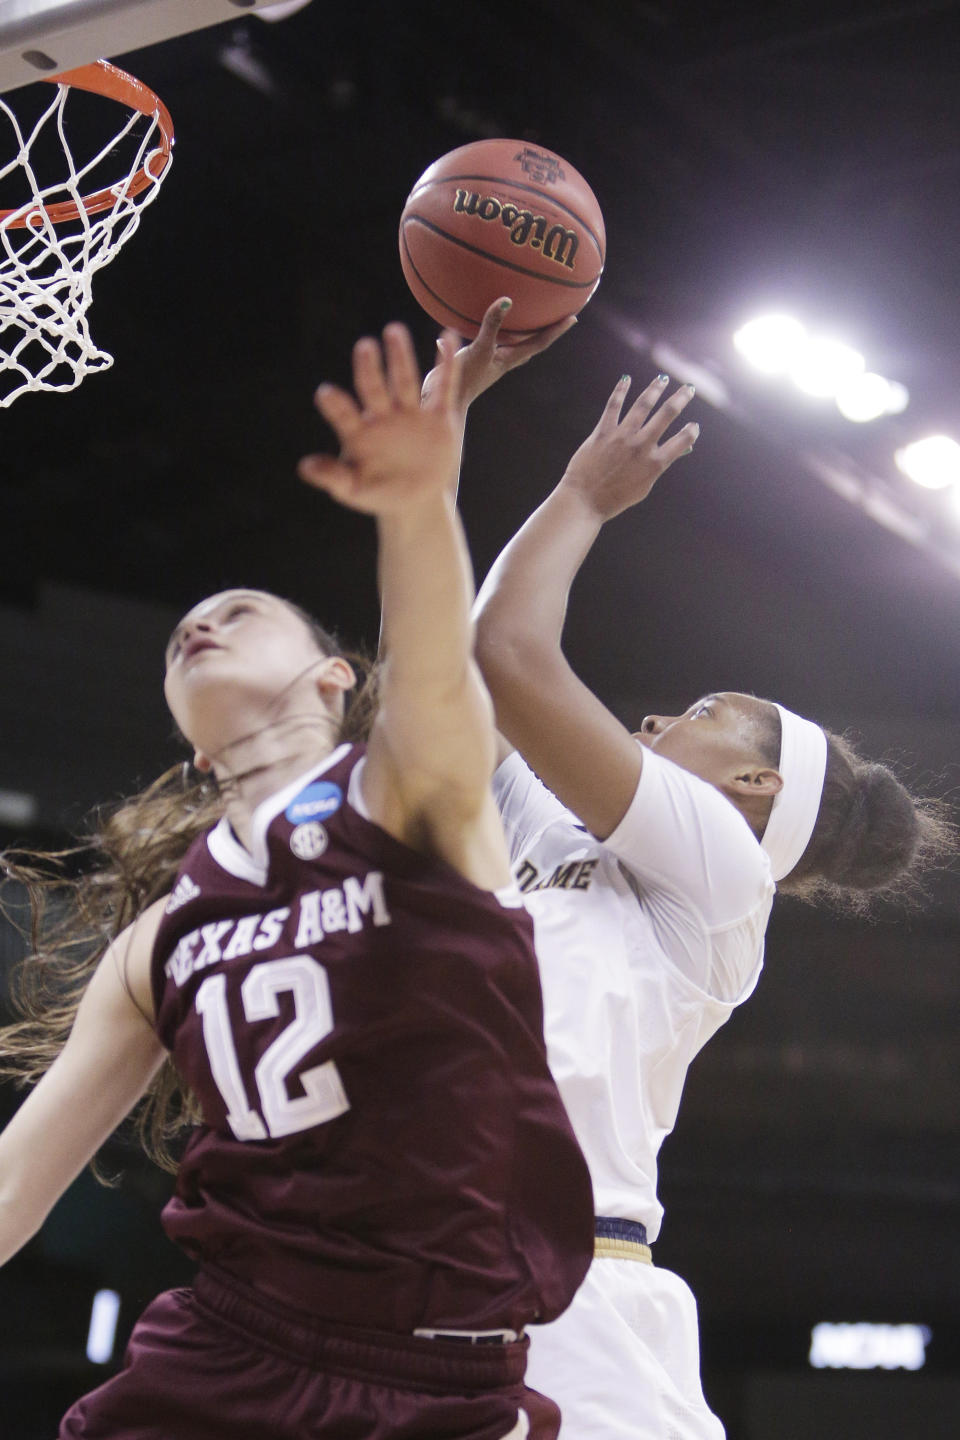 Notre Dame forward Danielle Patterson, right, shoots over Texas A&M guard Danni Williams (12) during the first half in a regional semifinal at the NCAA women's college basketball tournament, Saturday, March 24, 2018, Spokane, Wash. (AP Photo/Young Kwak)